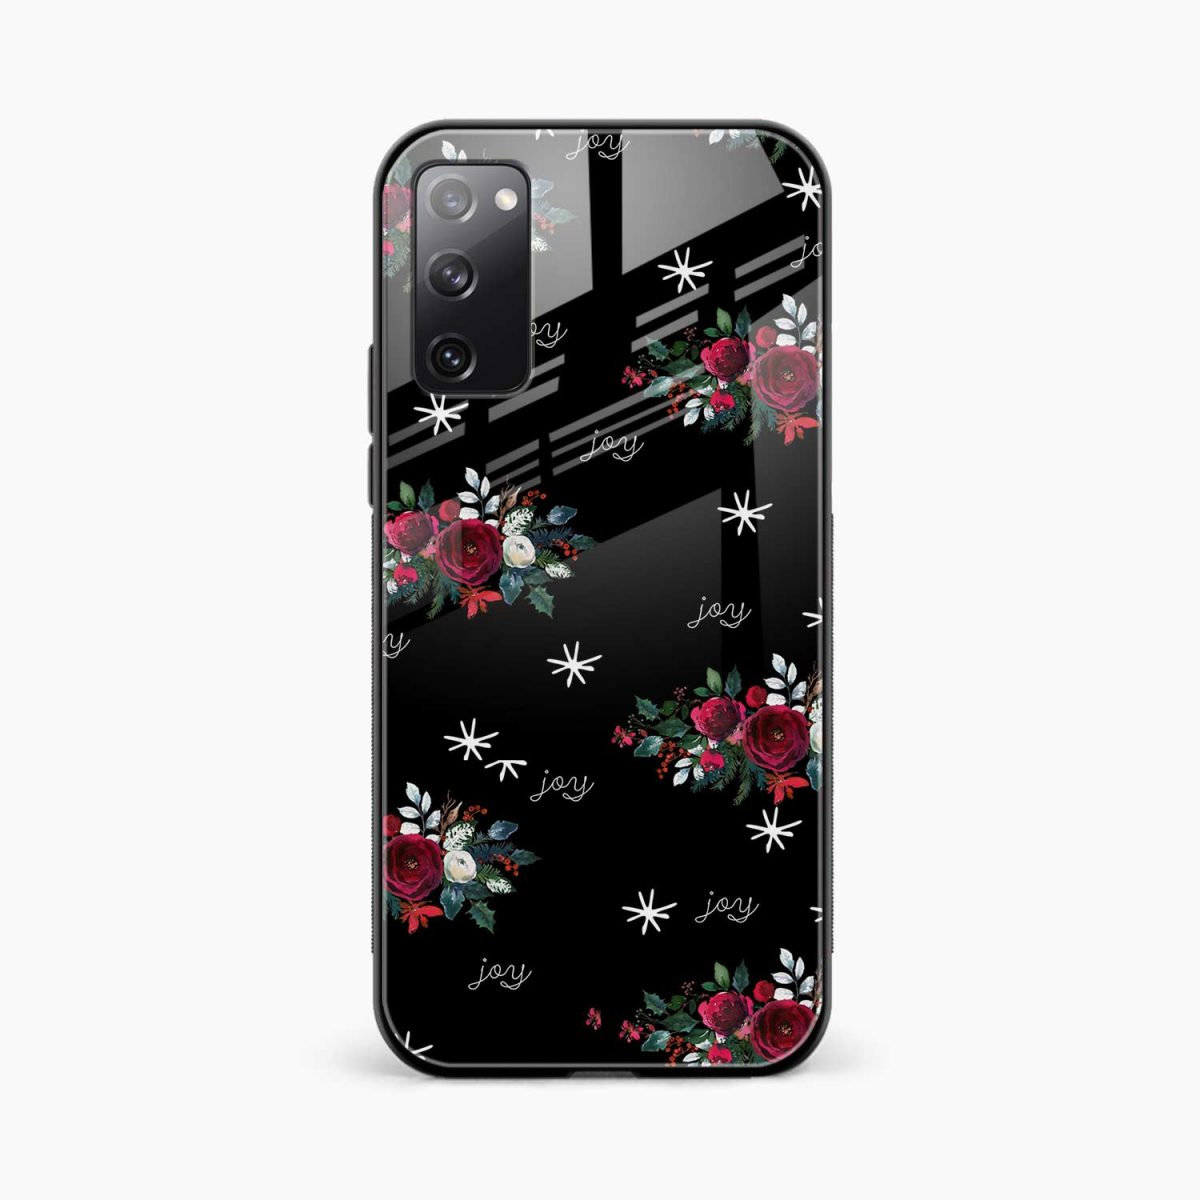 joy floral black colored front view samsung galaxy s20 fe back cover